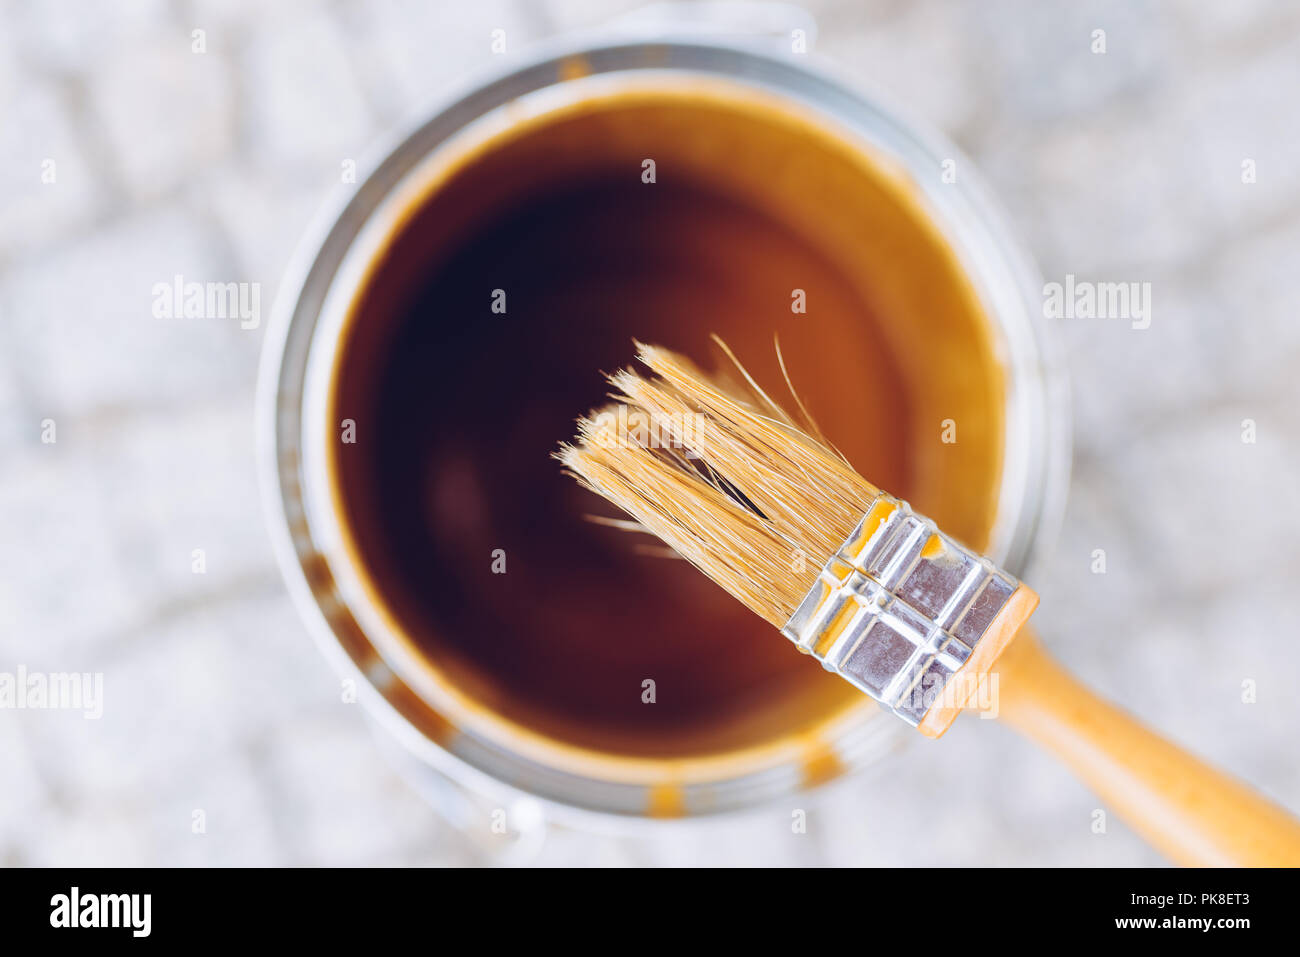 Paint brush on the can. Top view. House renovation, home improvement concept Stock Photo